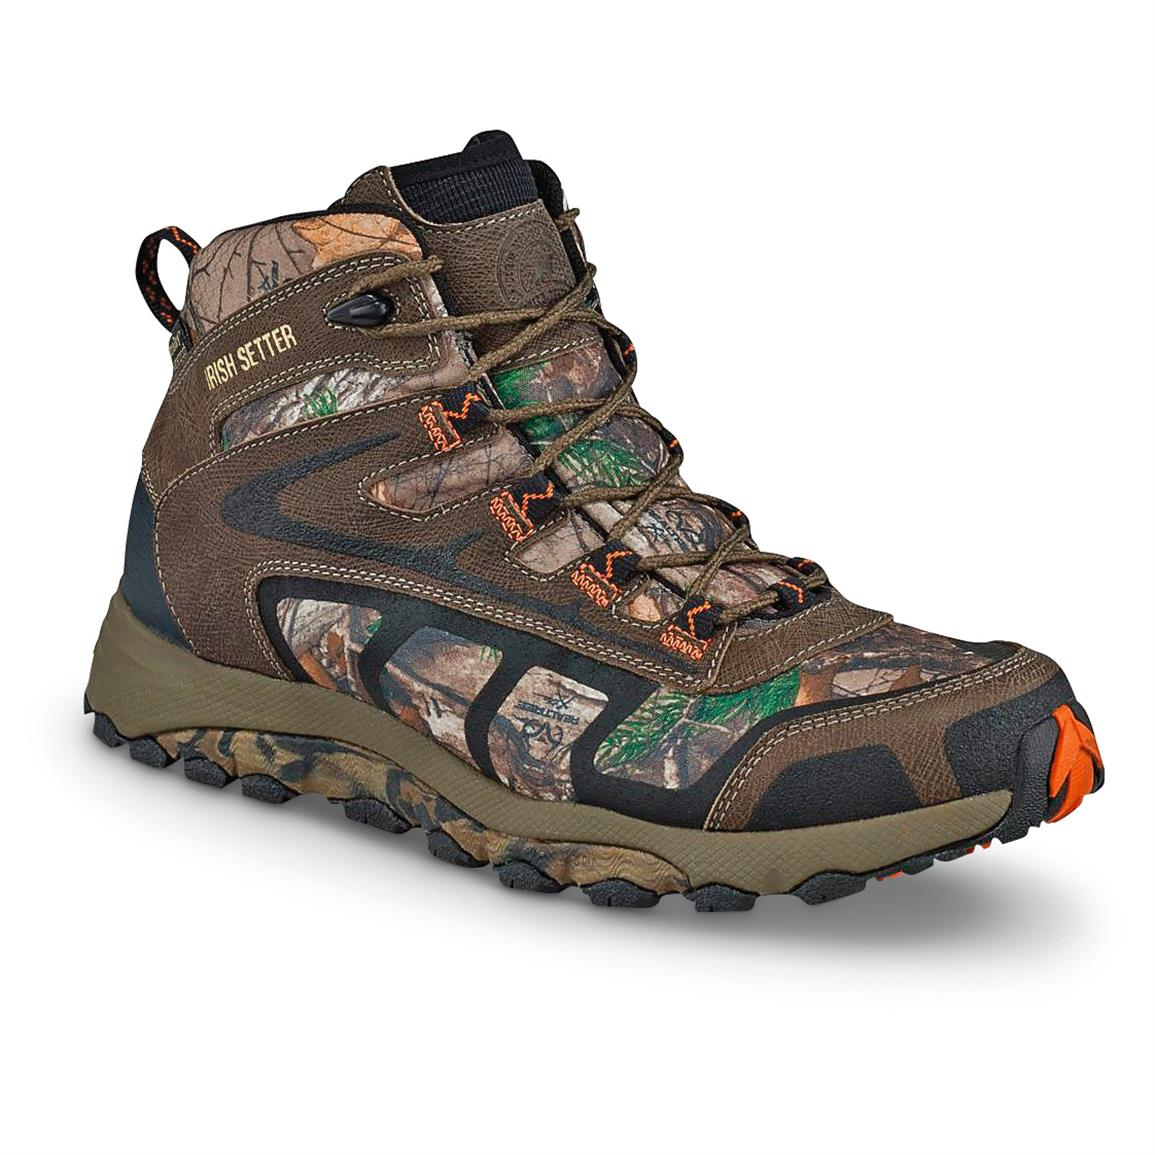 Irish Setter Men's Drifter Trail Waterproof Hiking Boots, Gray / Realtree Xtra